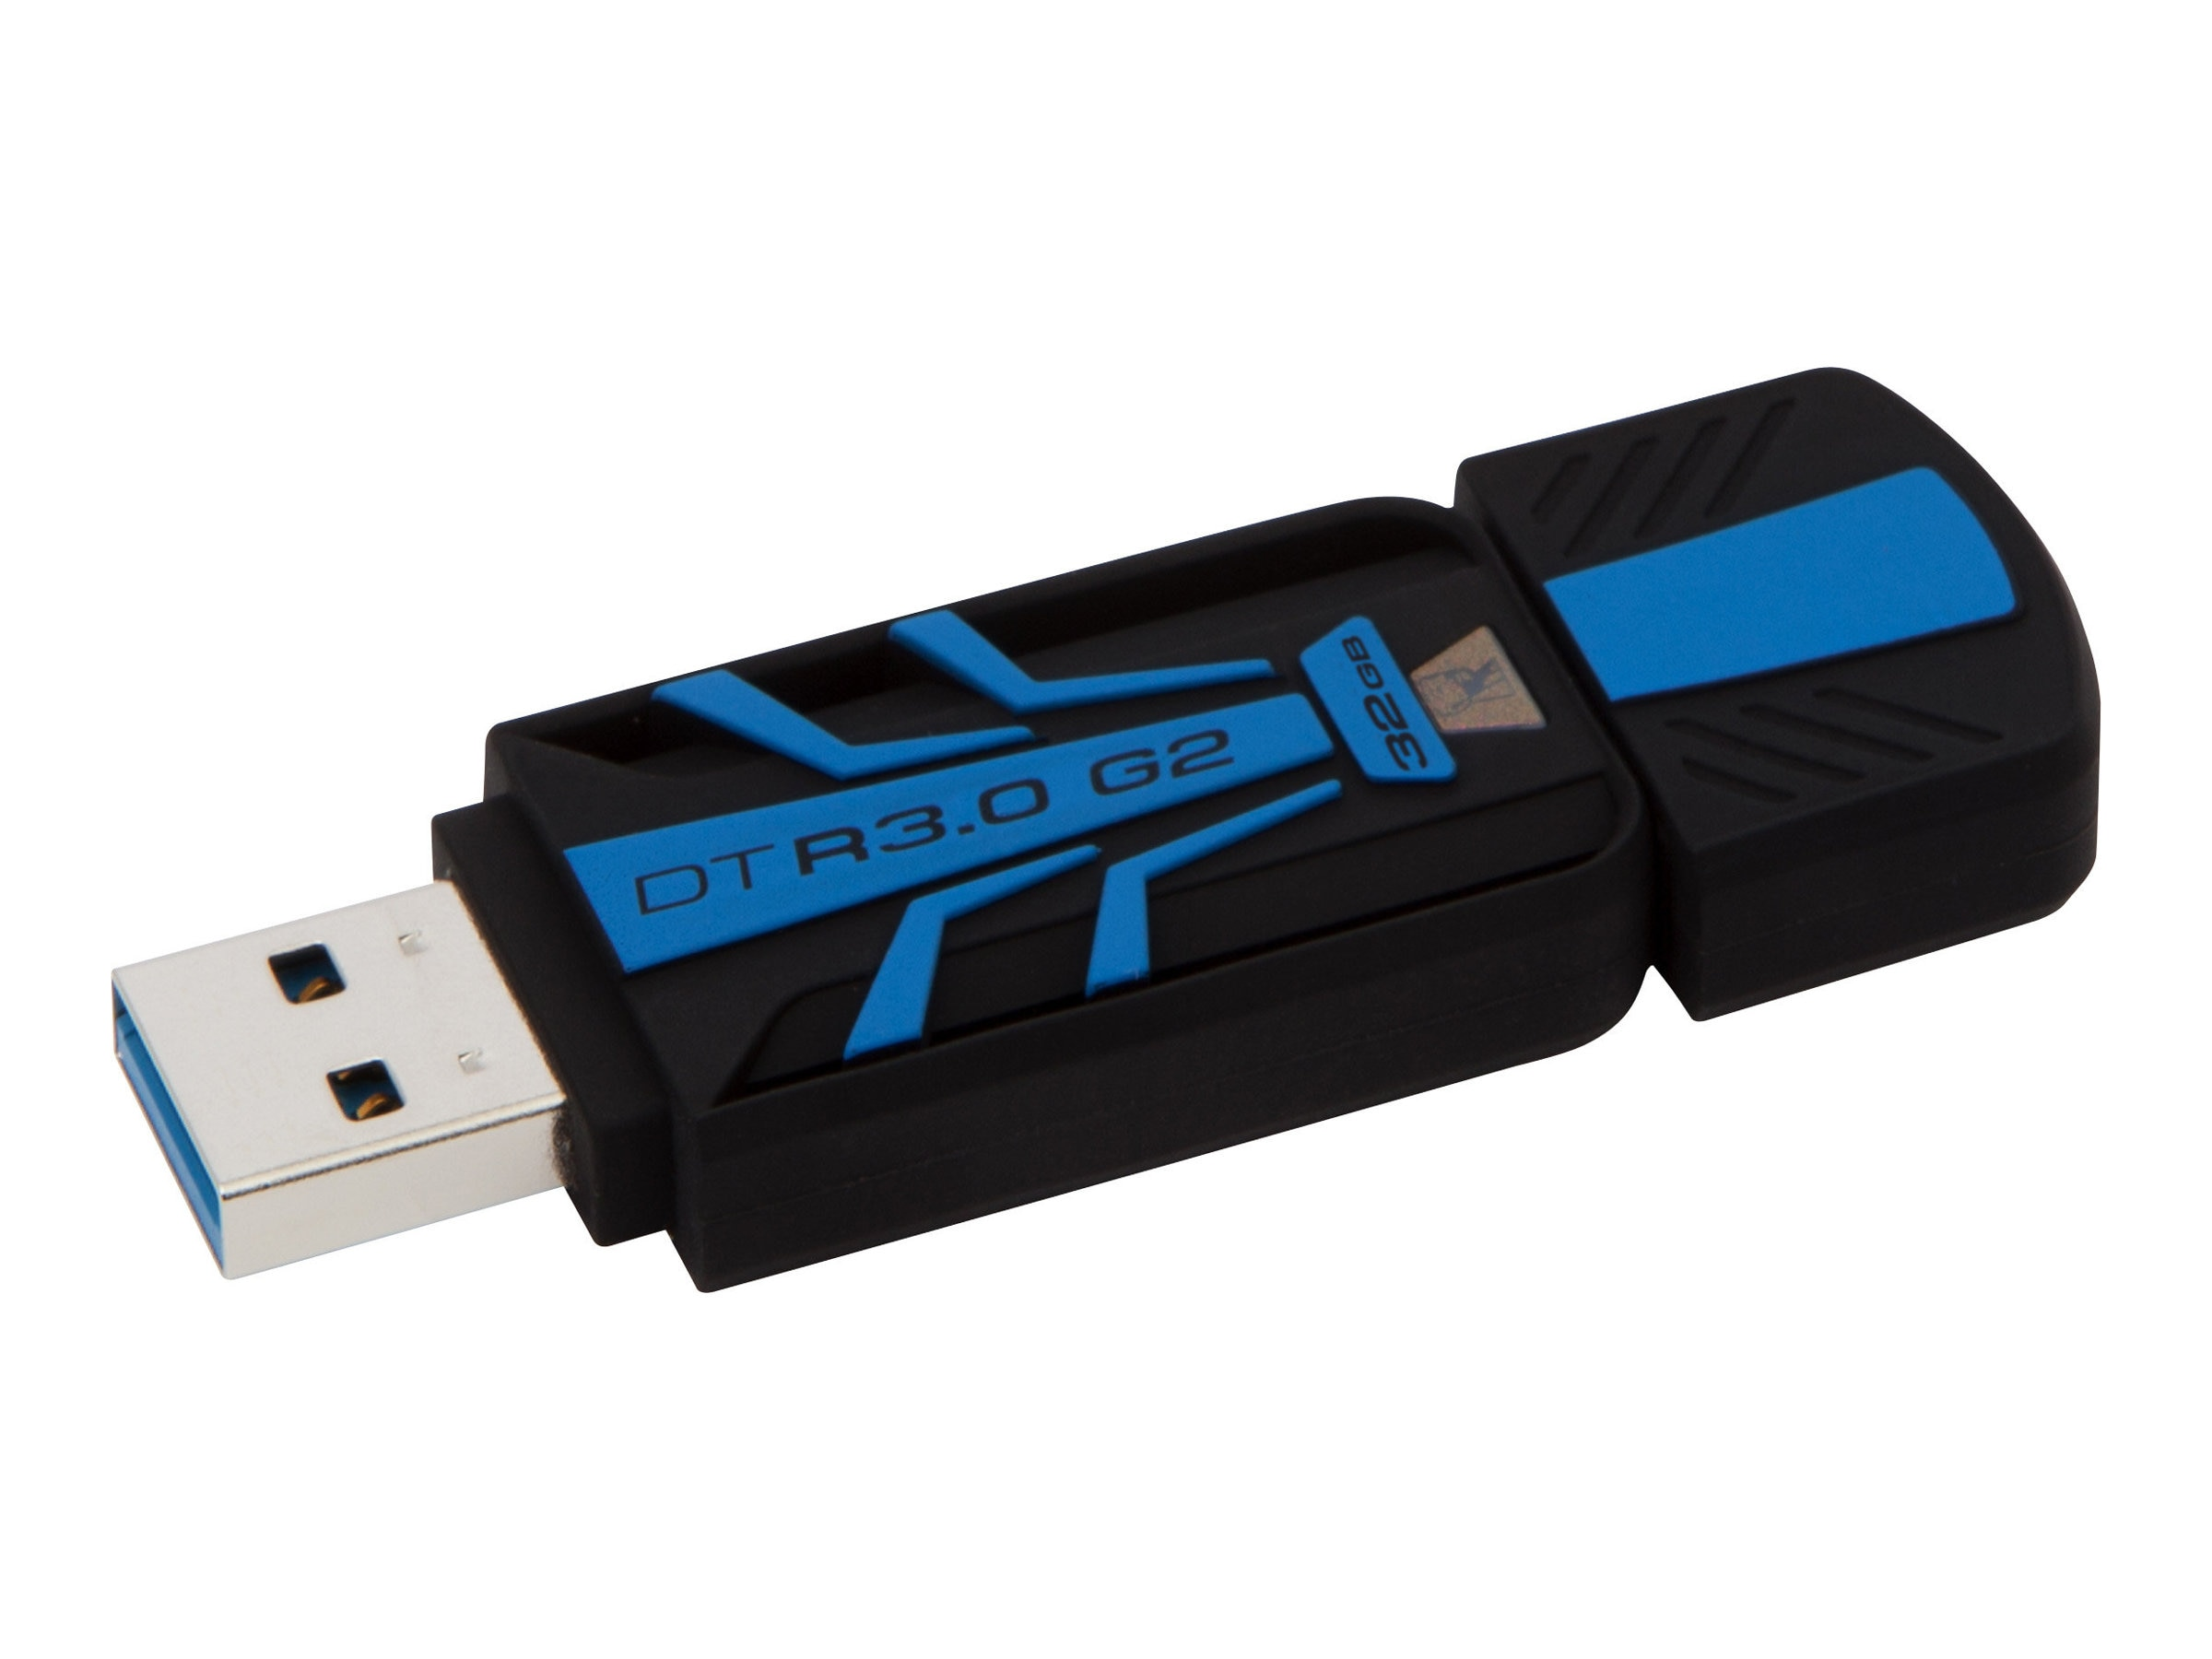 Kingston 32GB DataTraveler R3.0 G2 USB 3.0 Flash Drive